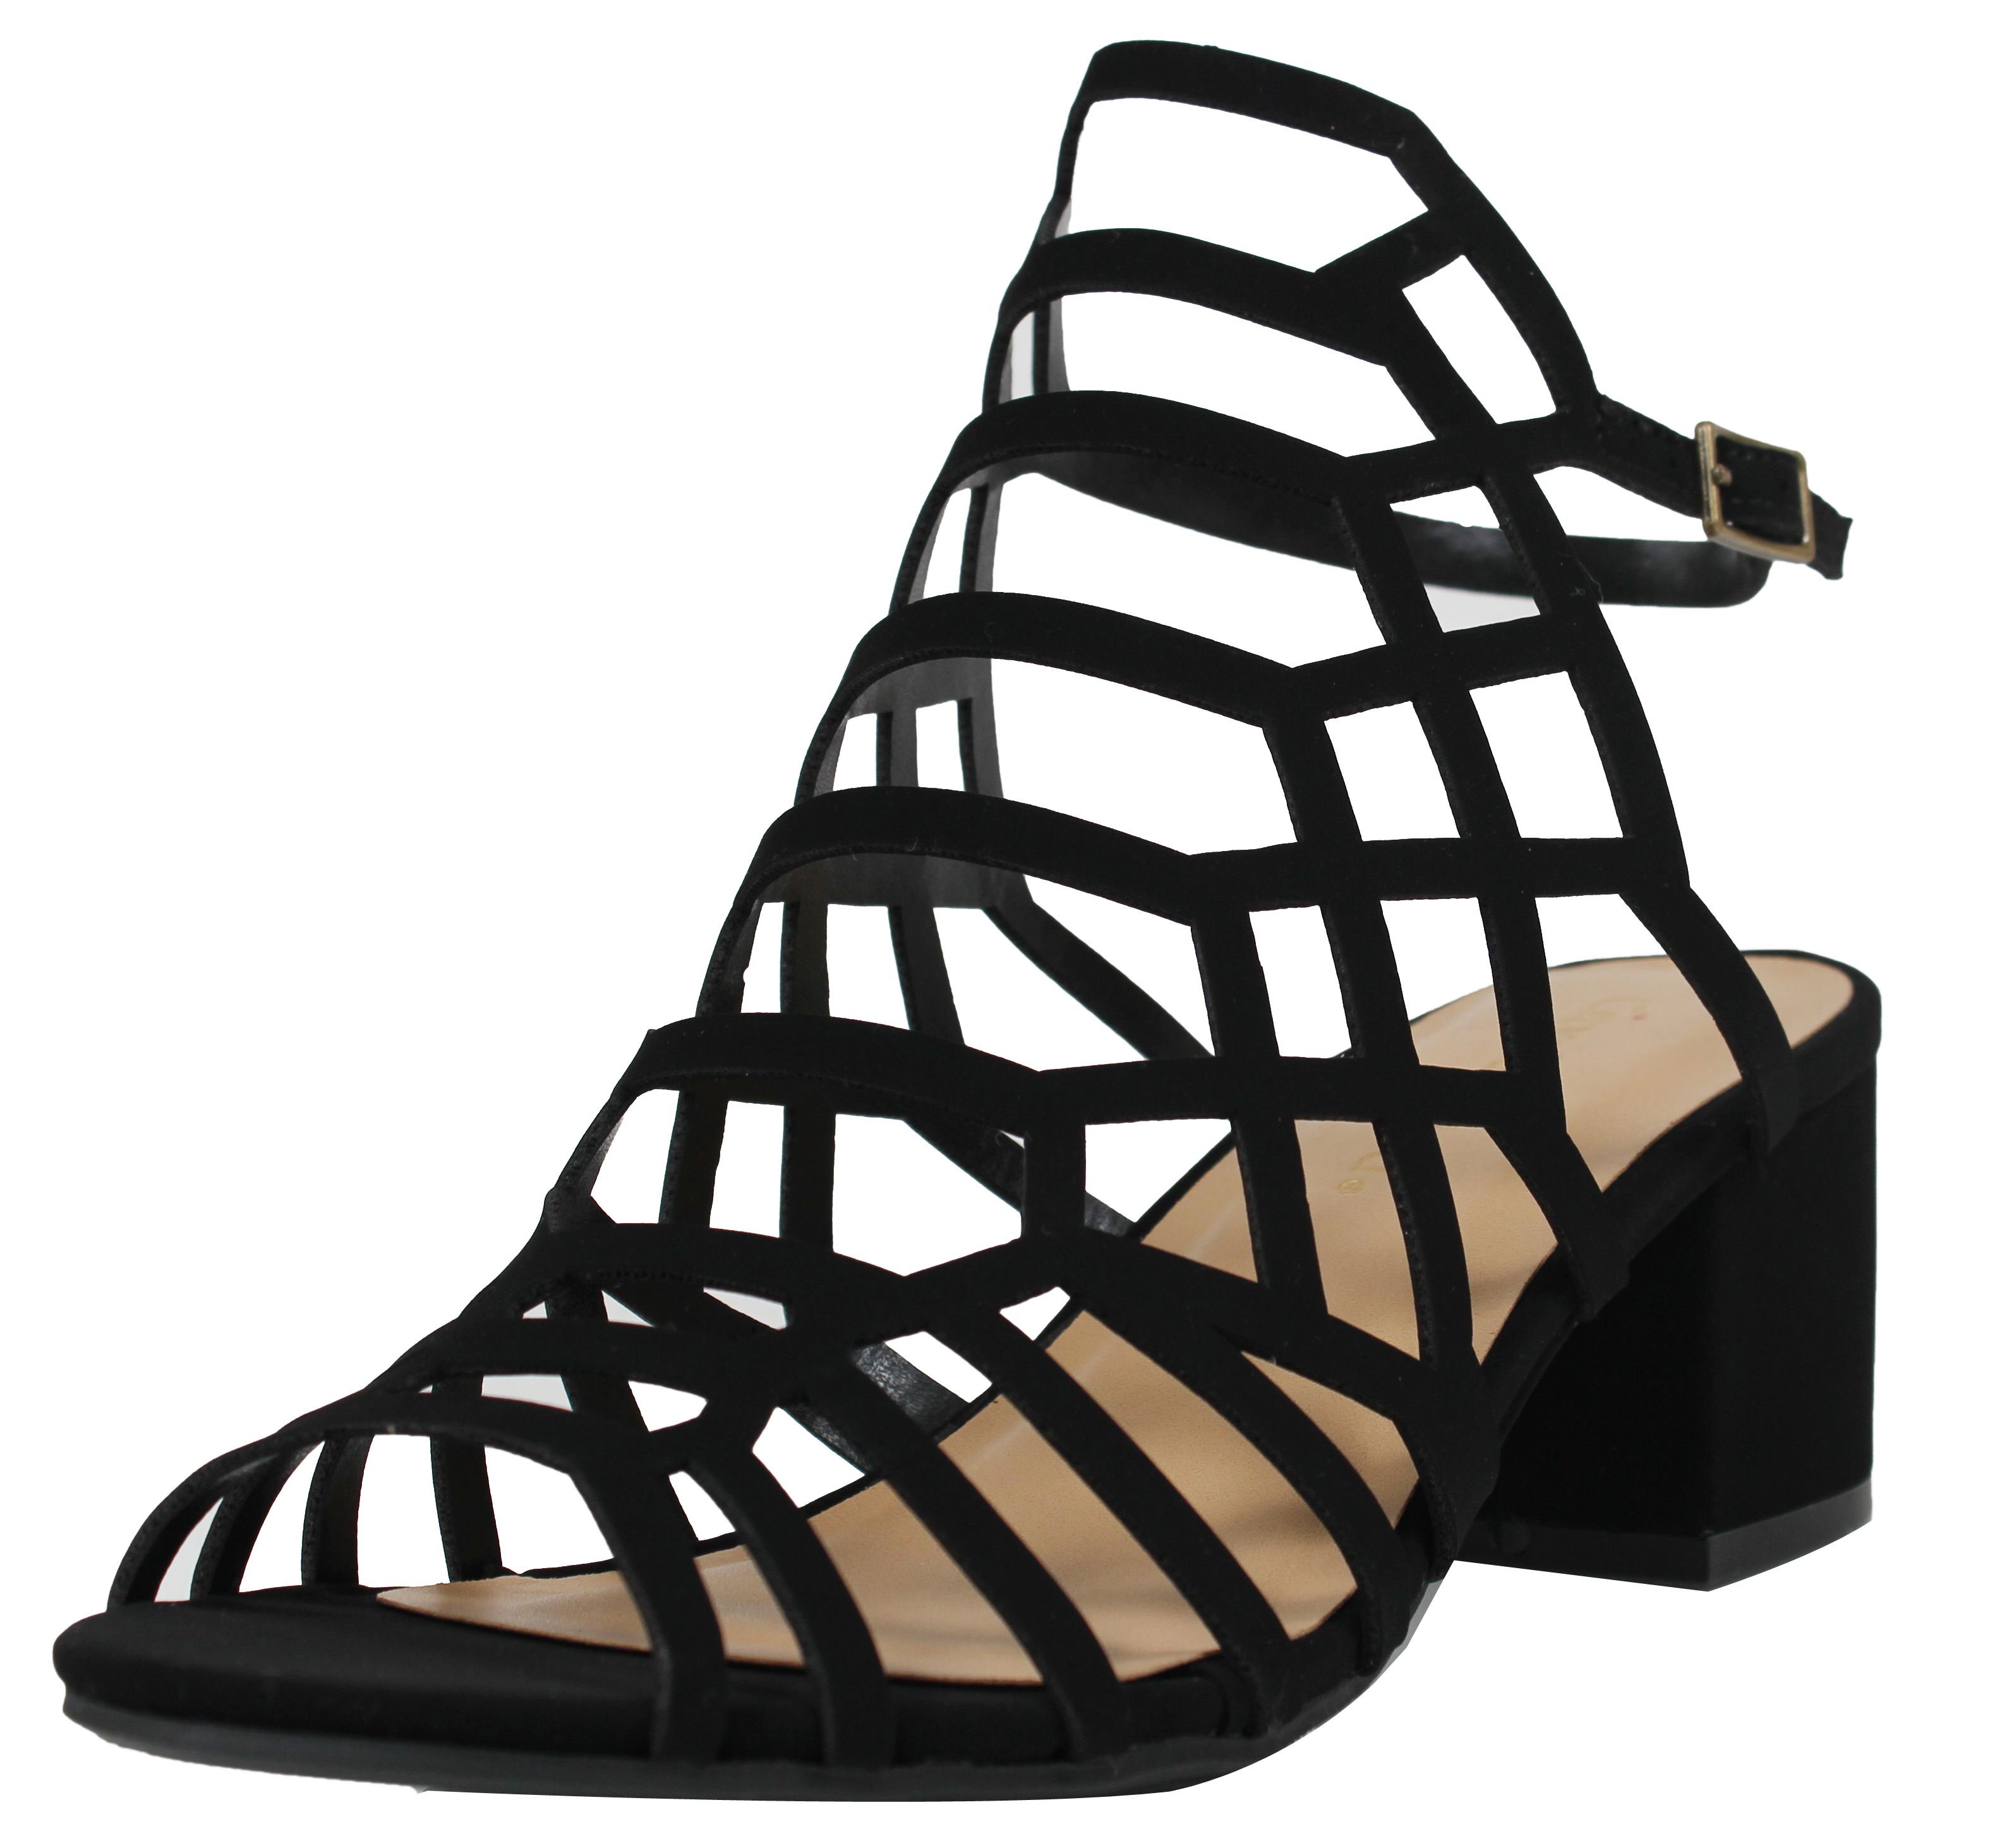 73885629623 City Classified Women s Open Toe Strappy Cutout Ankle Strap Chunky Mid Heel  Sandal (Black